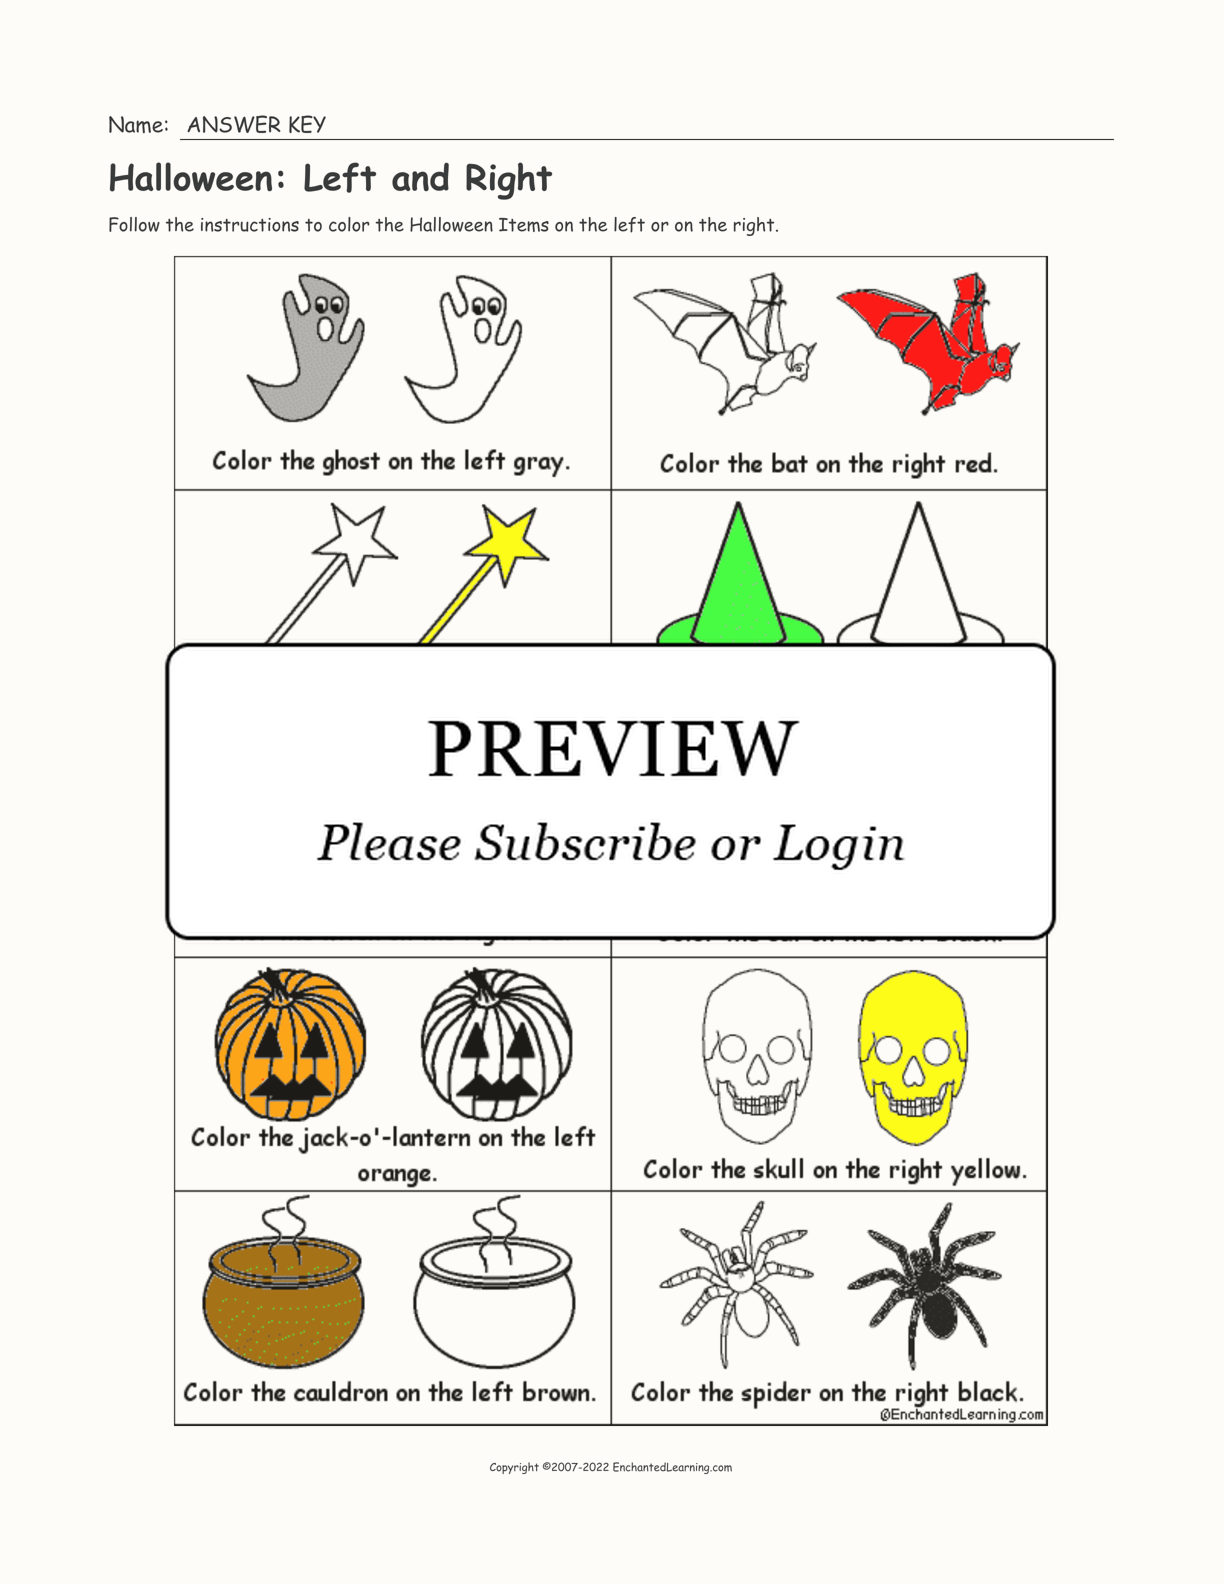 Halloween: Left and Right interactive worksheet page 2